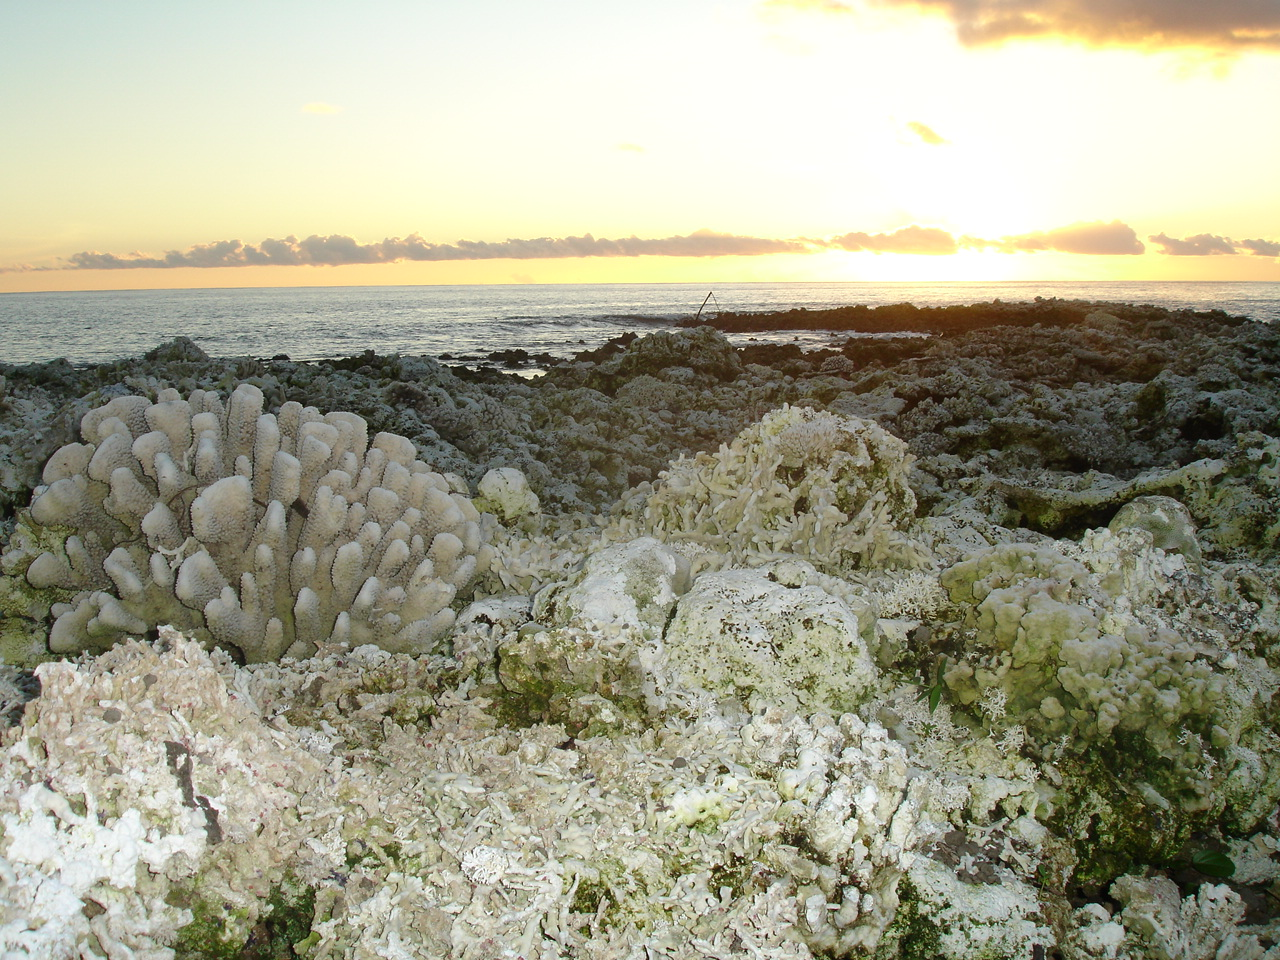 Uplifted reefs from 2 April 2007 earthquake